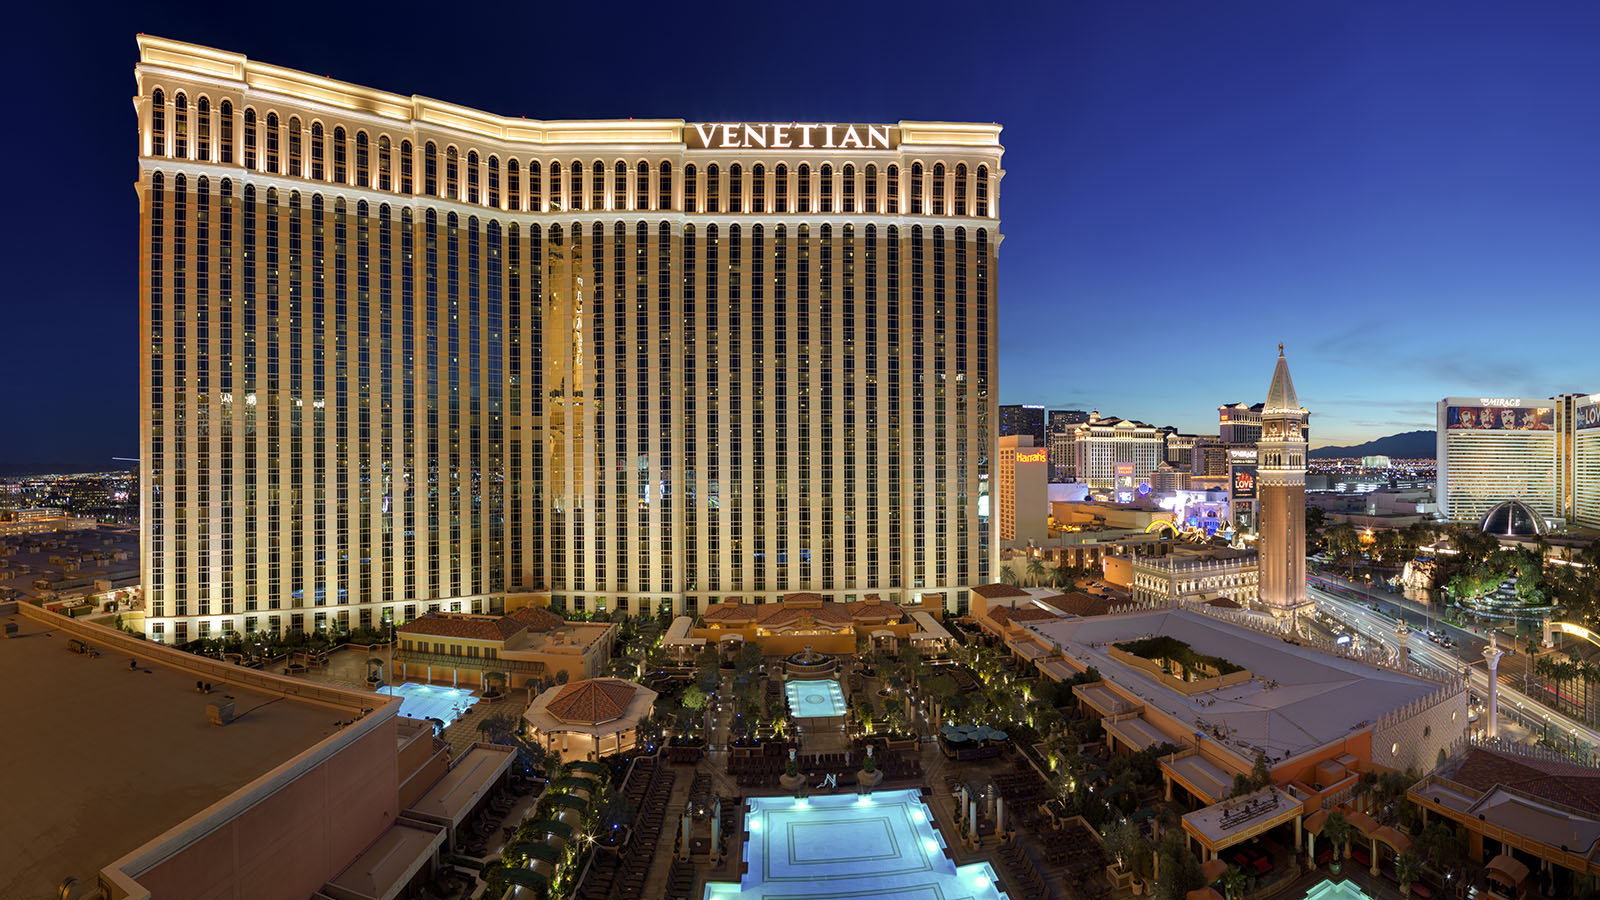 Showing The Venetian Resort and Casino feature image